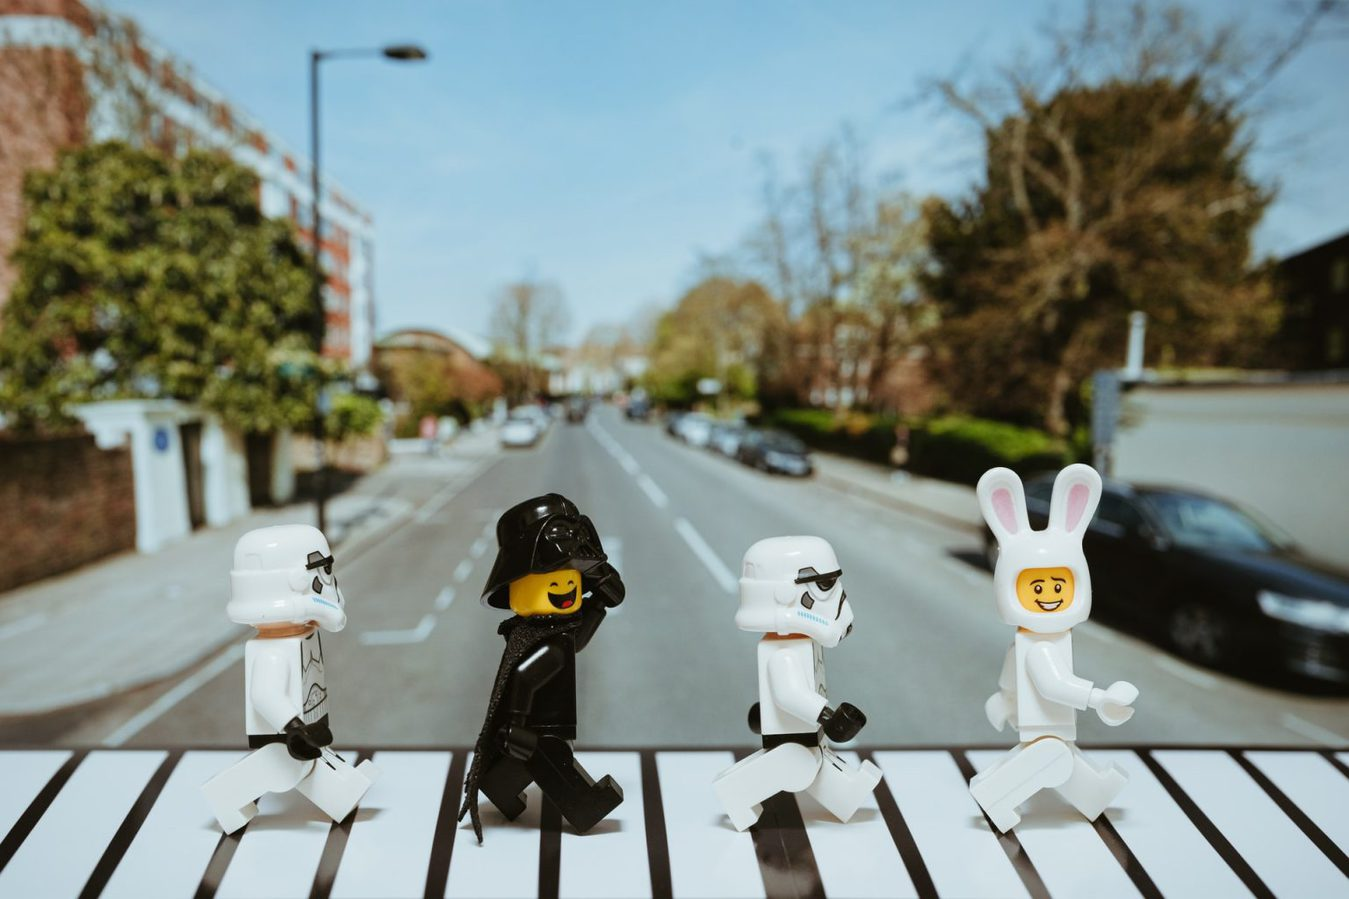 Lego Beatles crossing the road